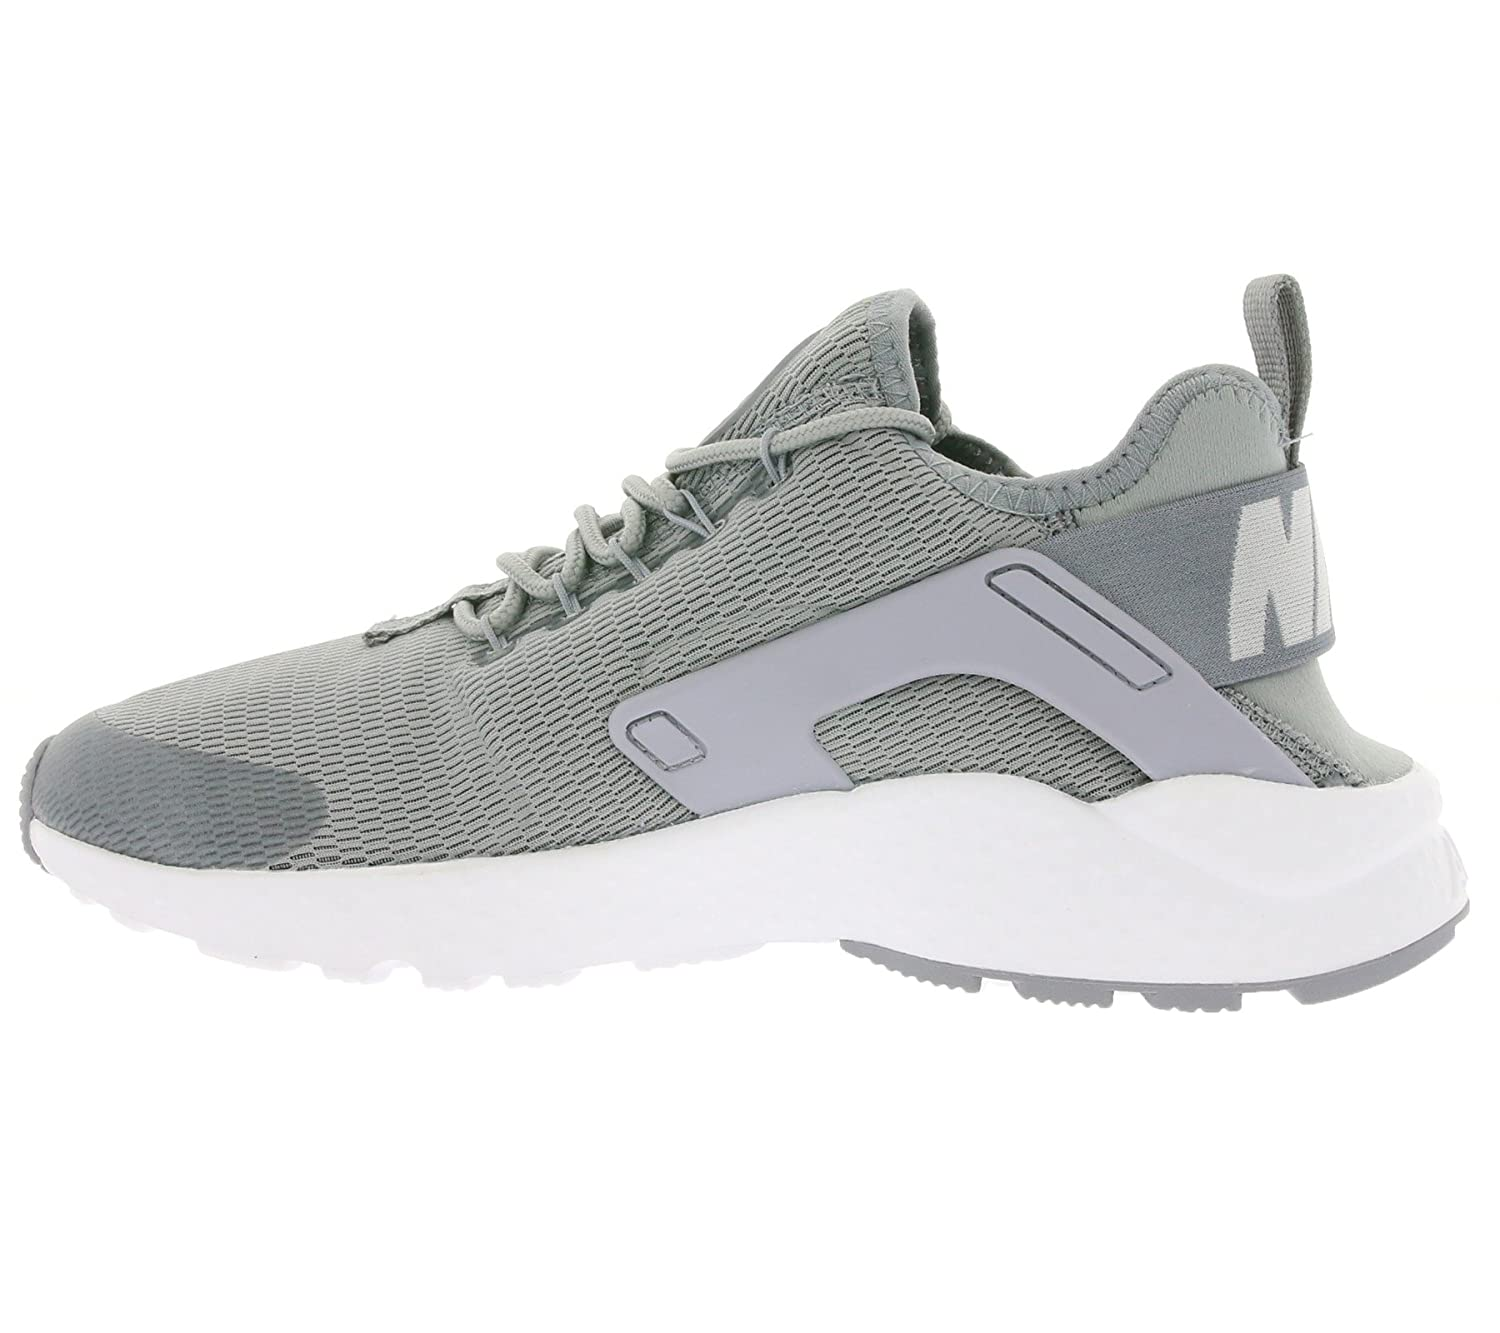 c0d5373a80 ... sweden amazon nike womens air huarache run ultra running trainers  819151 sneakers shoes us 6.5 stealth